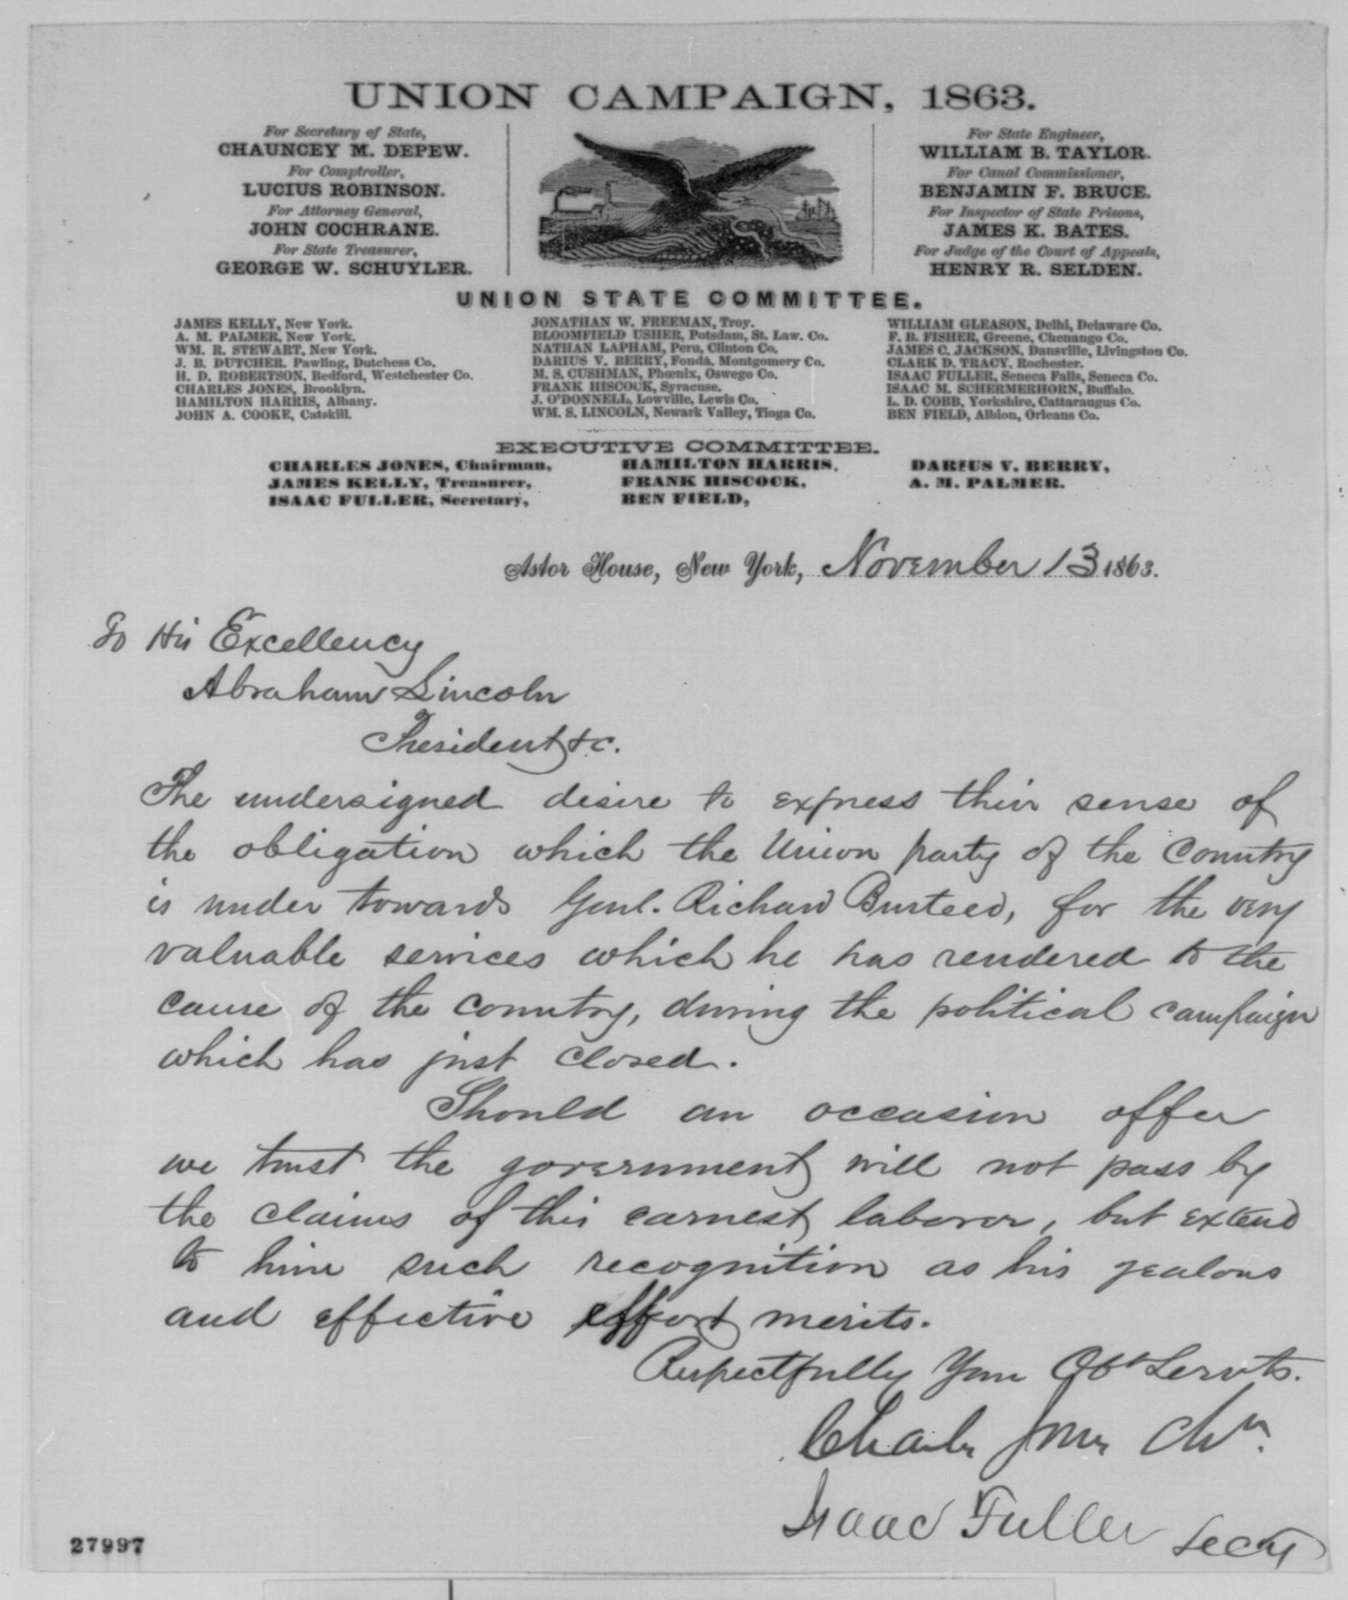 Charles Jones and Isaac Fuller to Abraham Lincoln, Friday, November 13, 1863  (Praise General Busteed for his work in the recent political campaign)